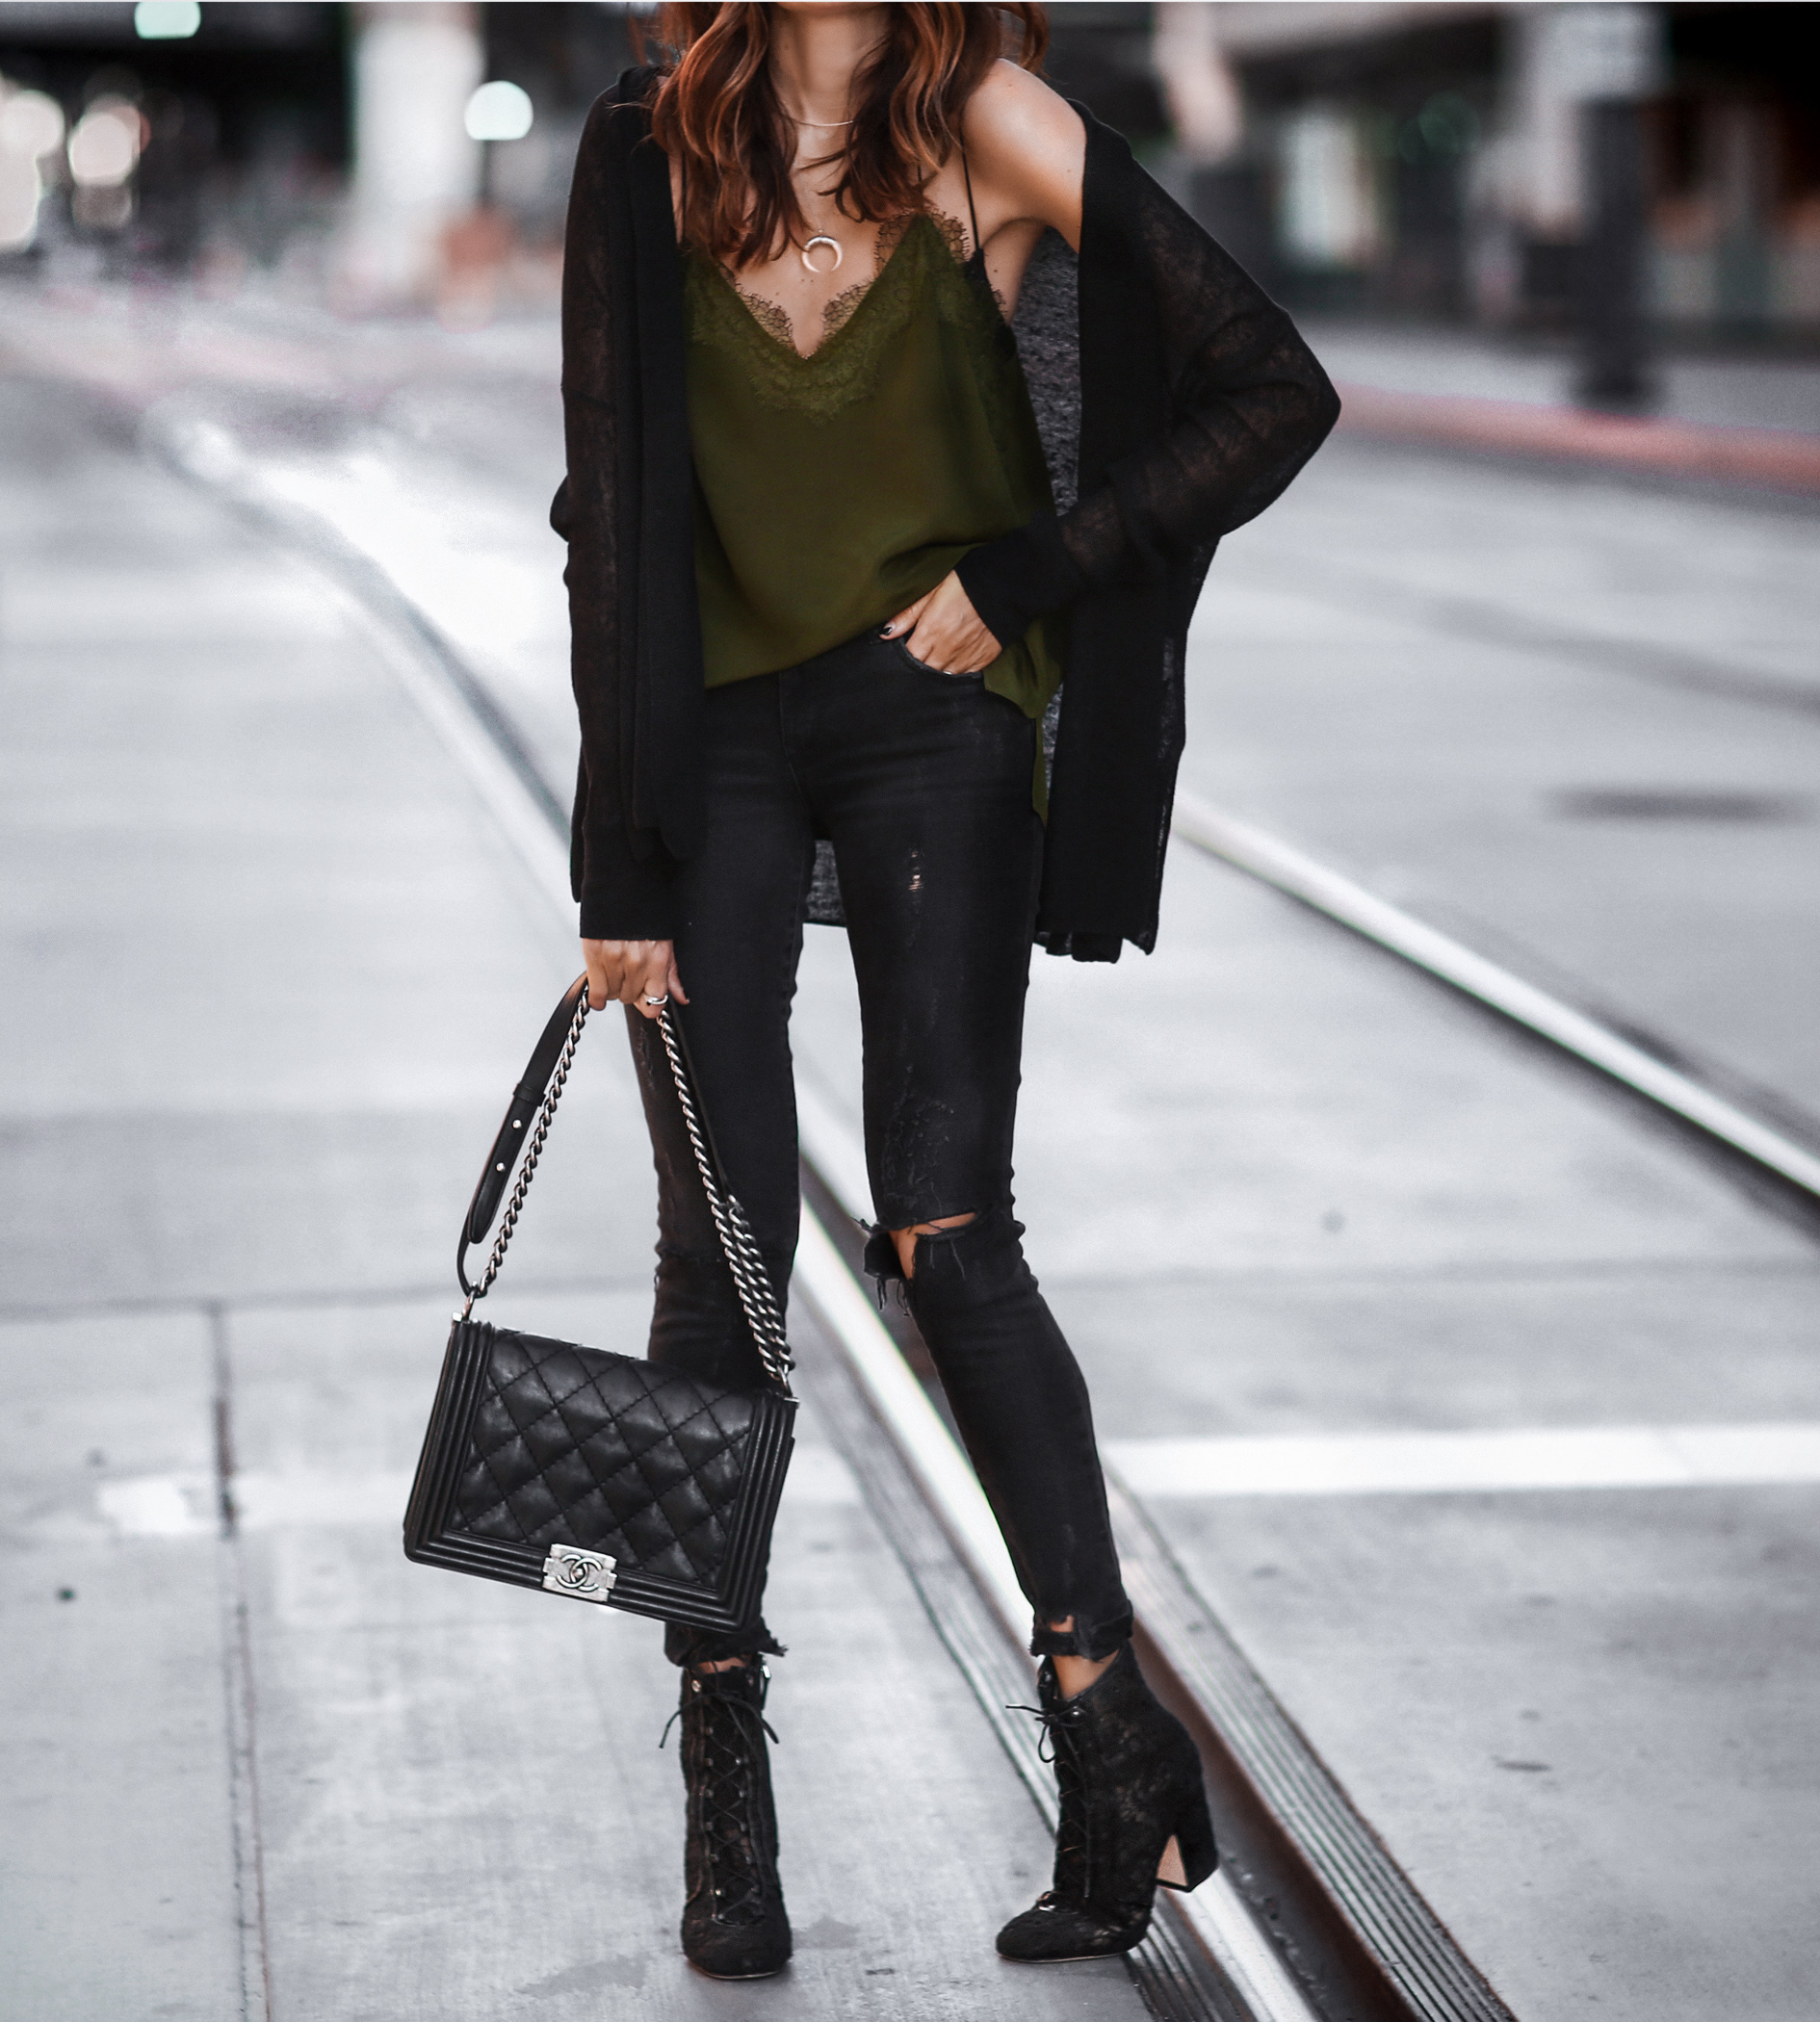 green lace cami, black cardigan, black ripped skinny jeans, chanel bag, black lace up booties